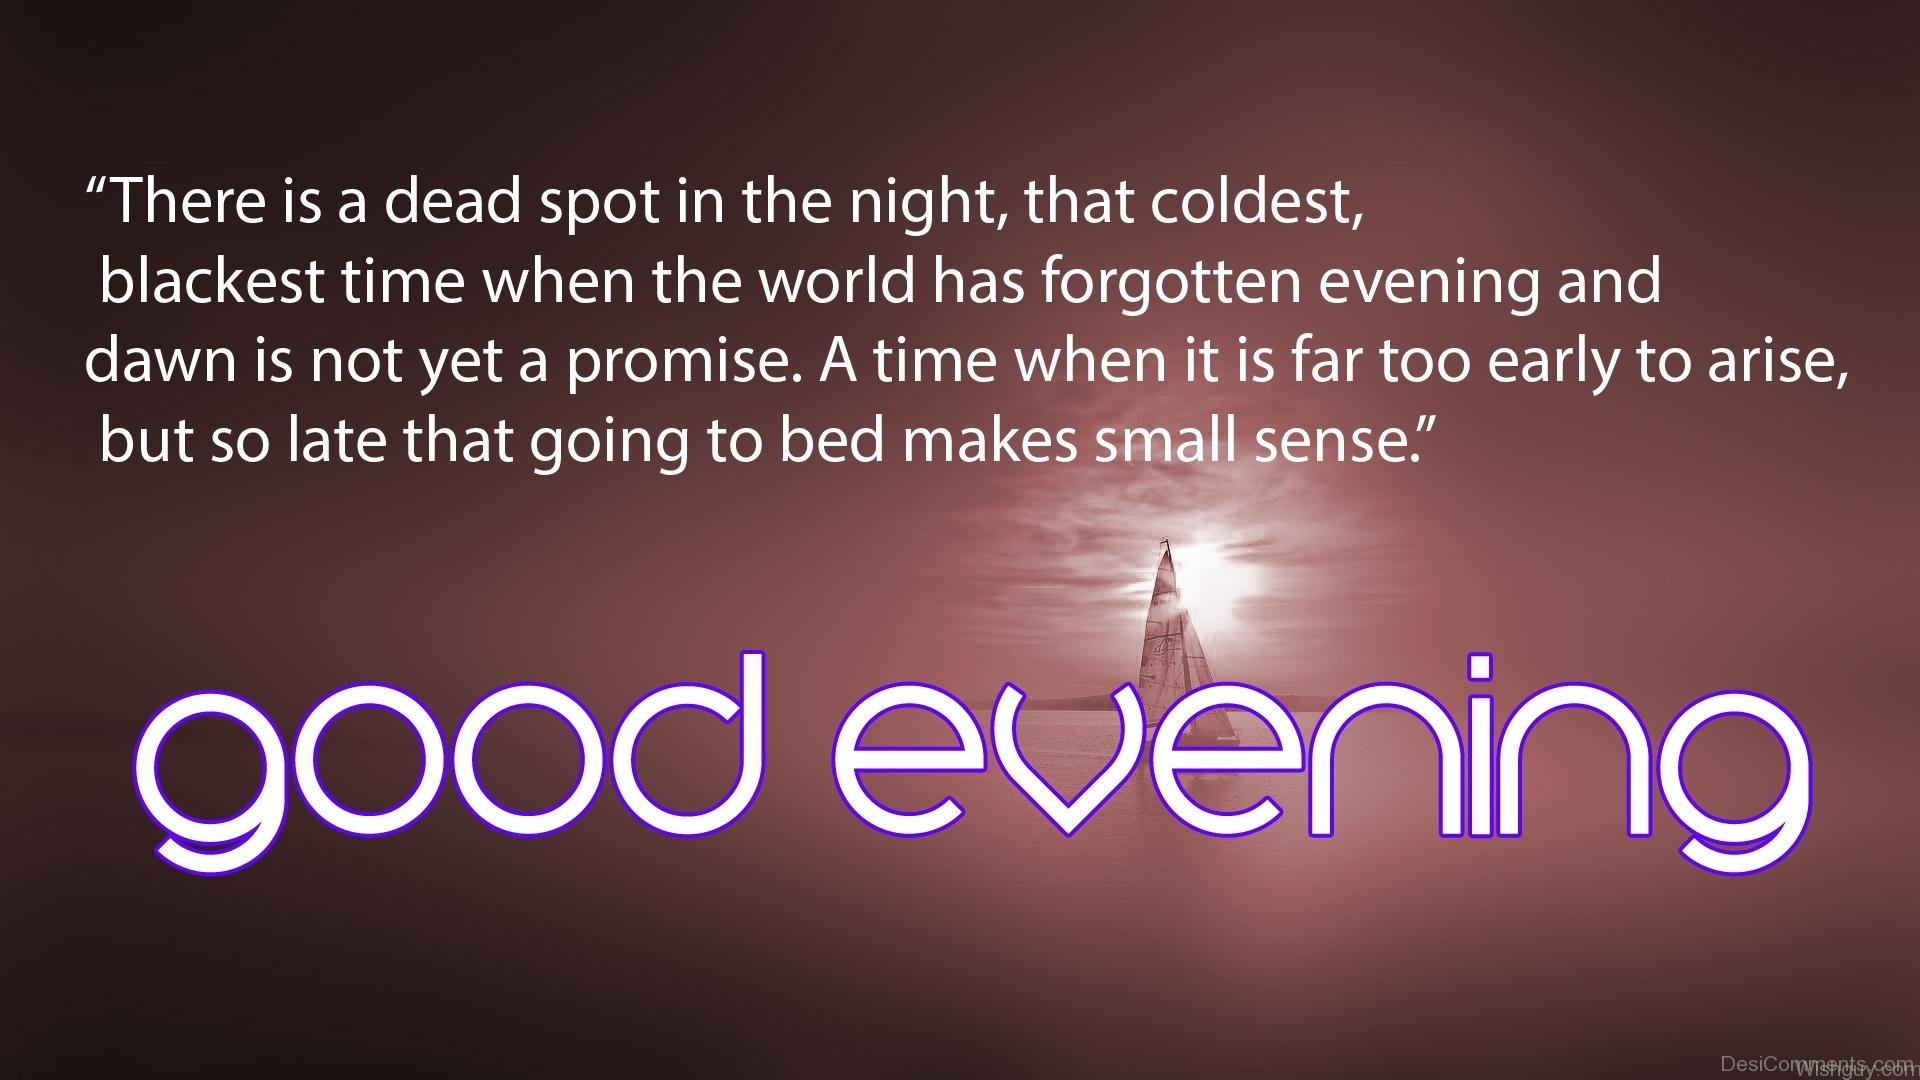 Good Evening Wallpaper For Facebook Upload